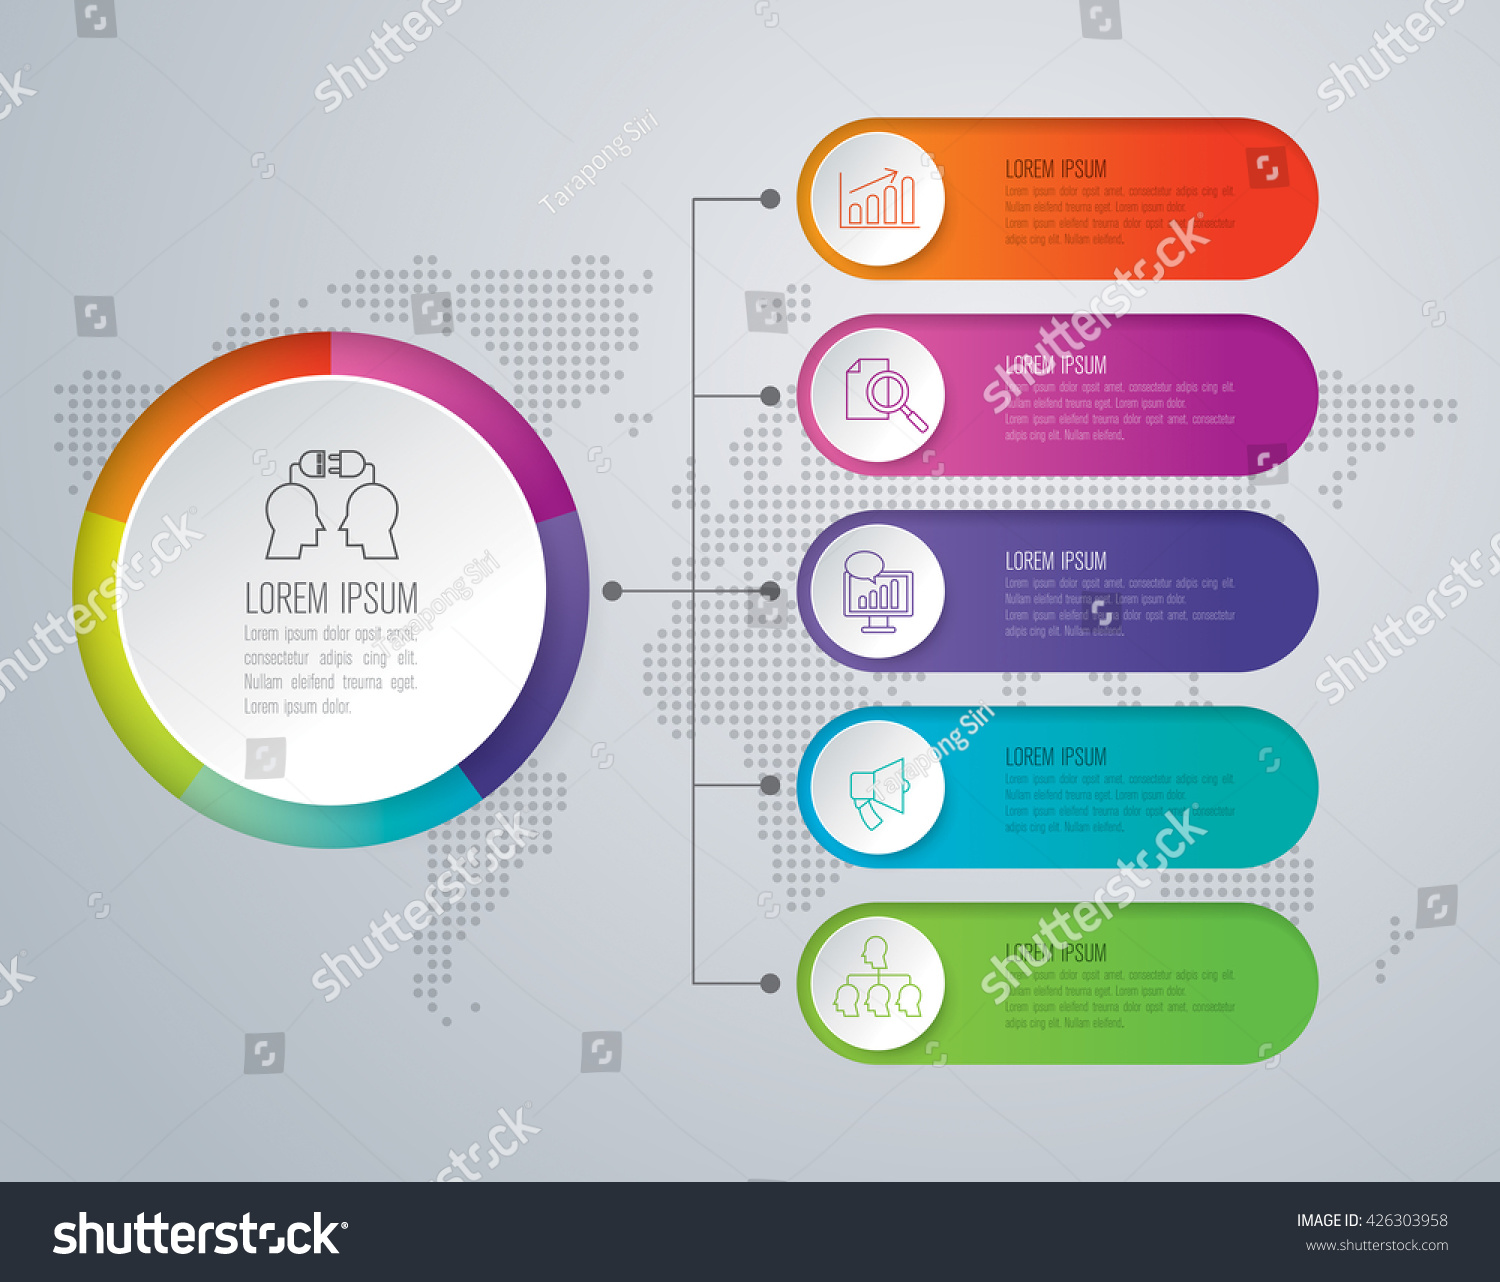 Infographic Design Vector Marketing Icons Can Stock Vector ...